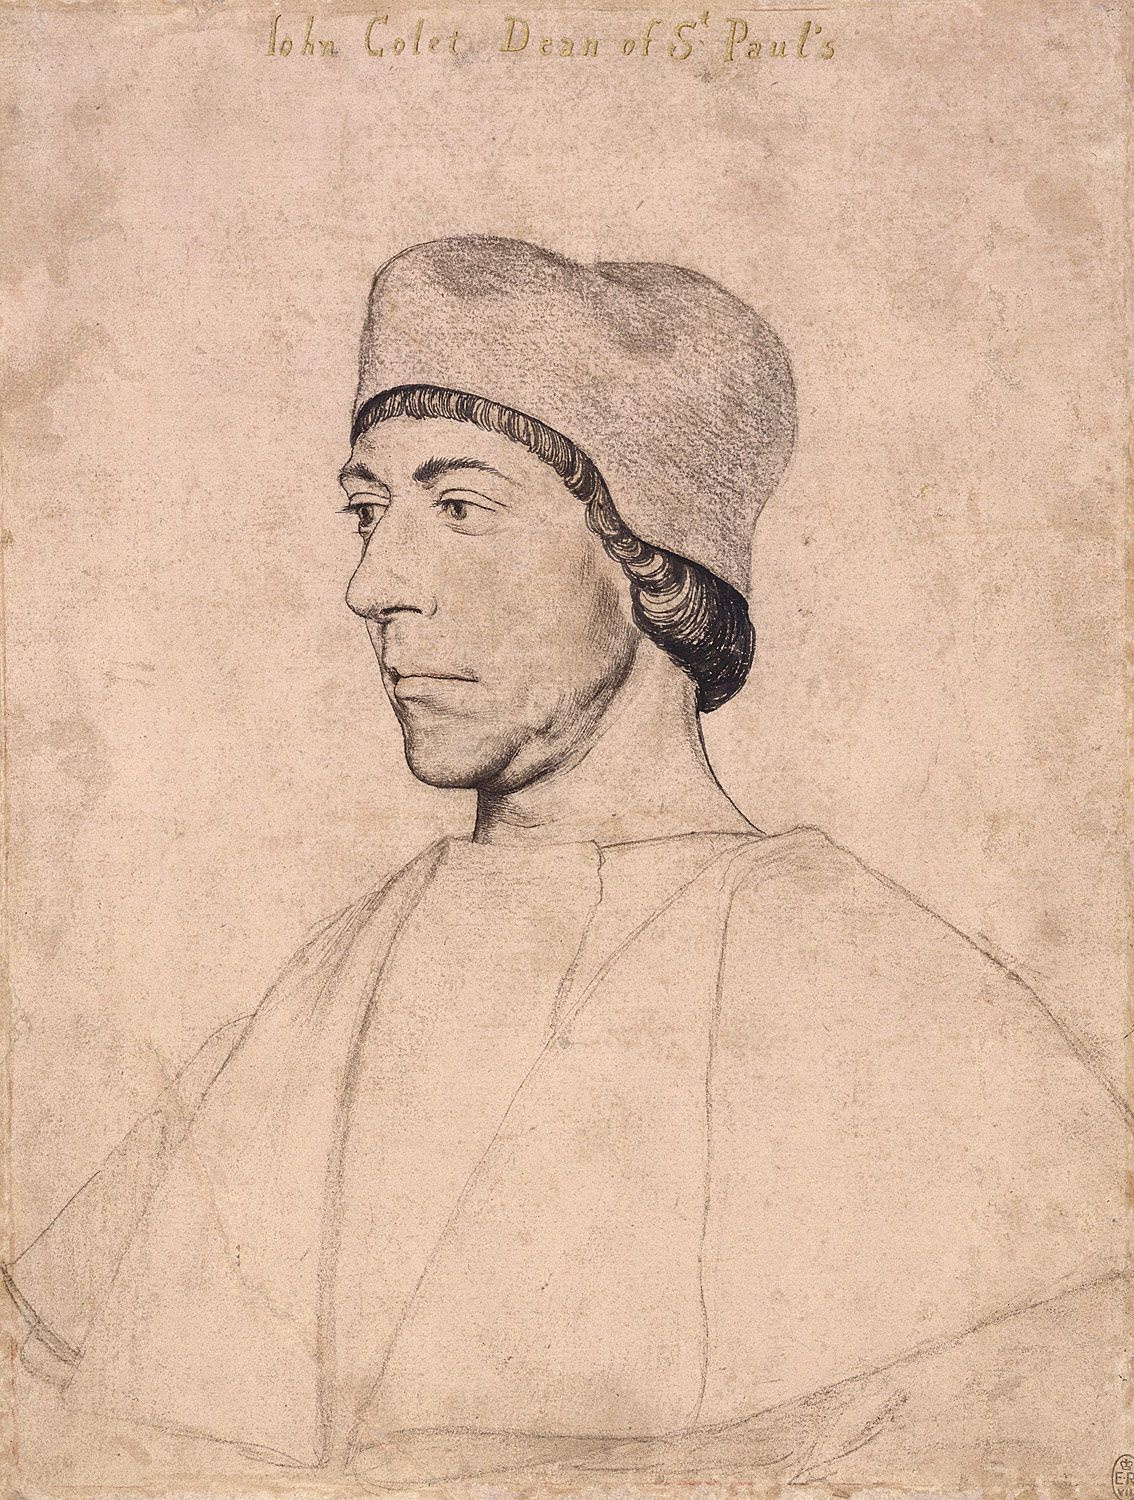 Portrait of John Colet. c.1535